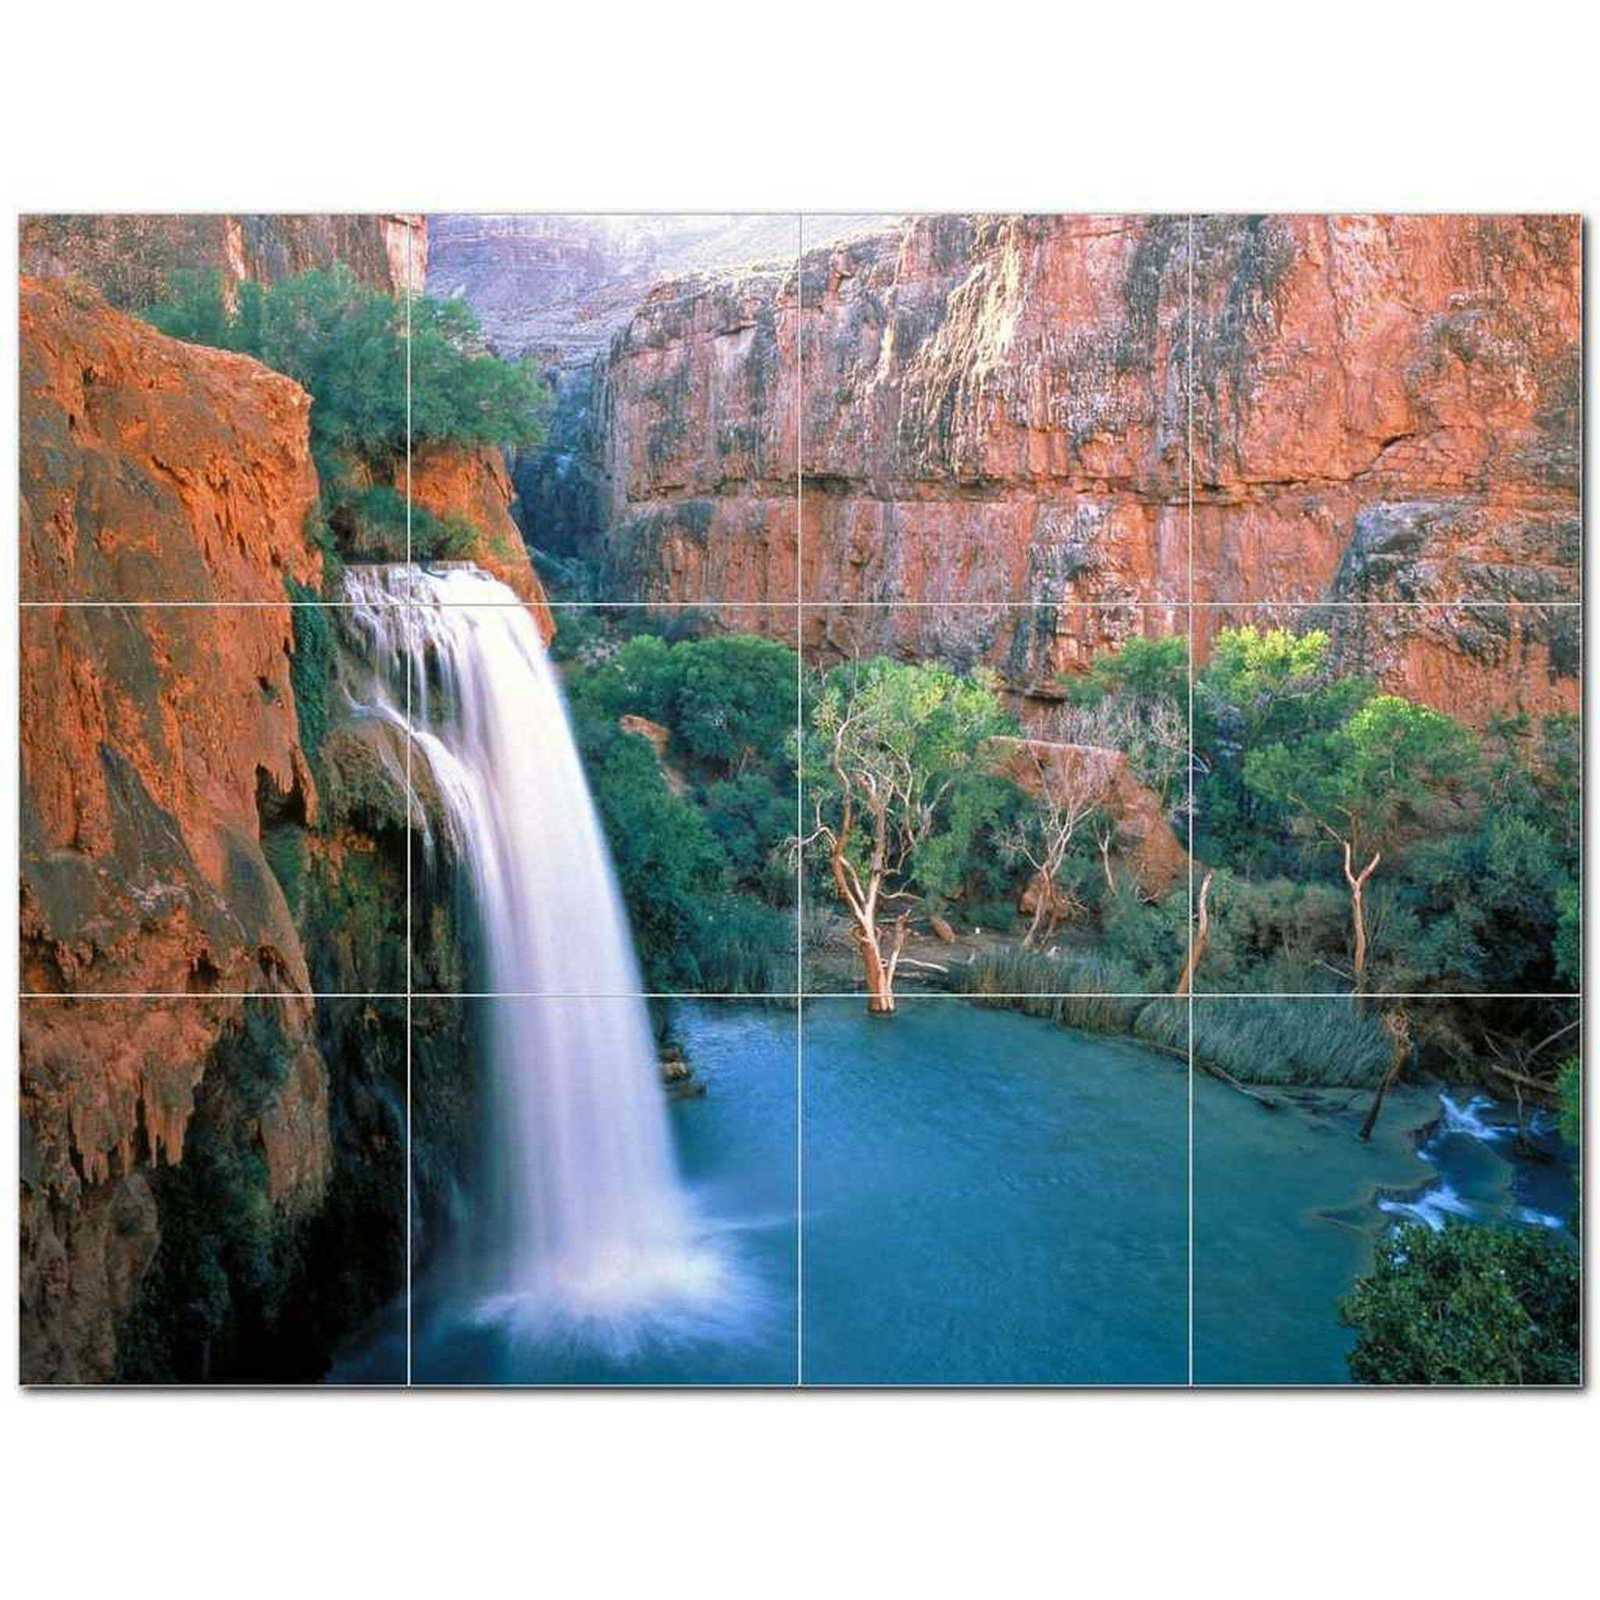 Primary image for Waterfall Photo Ceramic Tile Mural Kitchen Backsplash Bathroom Shower BAZ406109